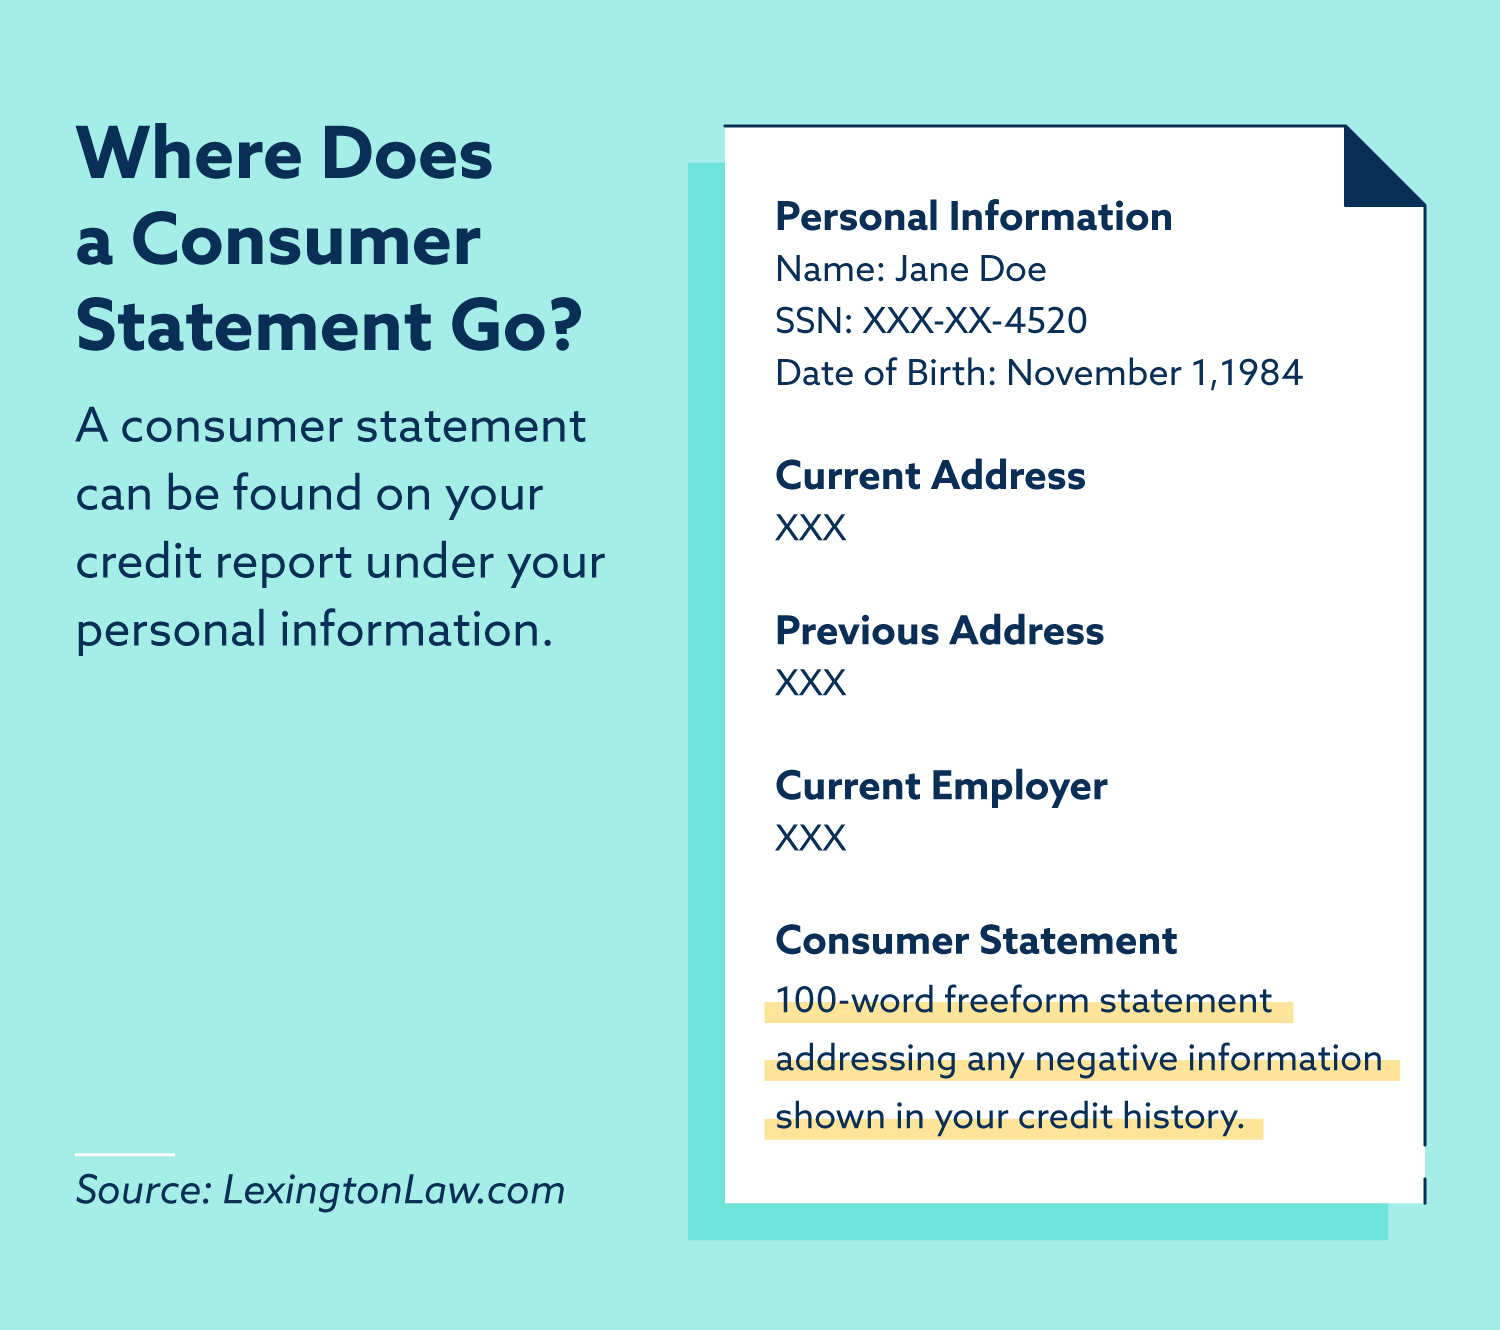 Where does a consumer statement go? A consumer statement can be found on your credit report under your personal information.